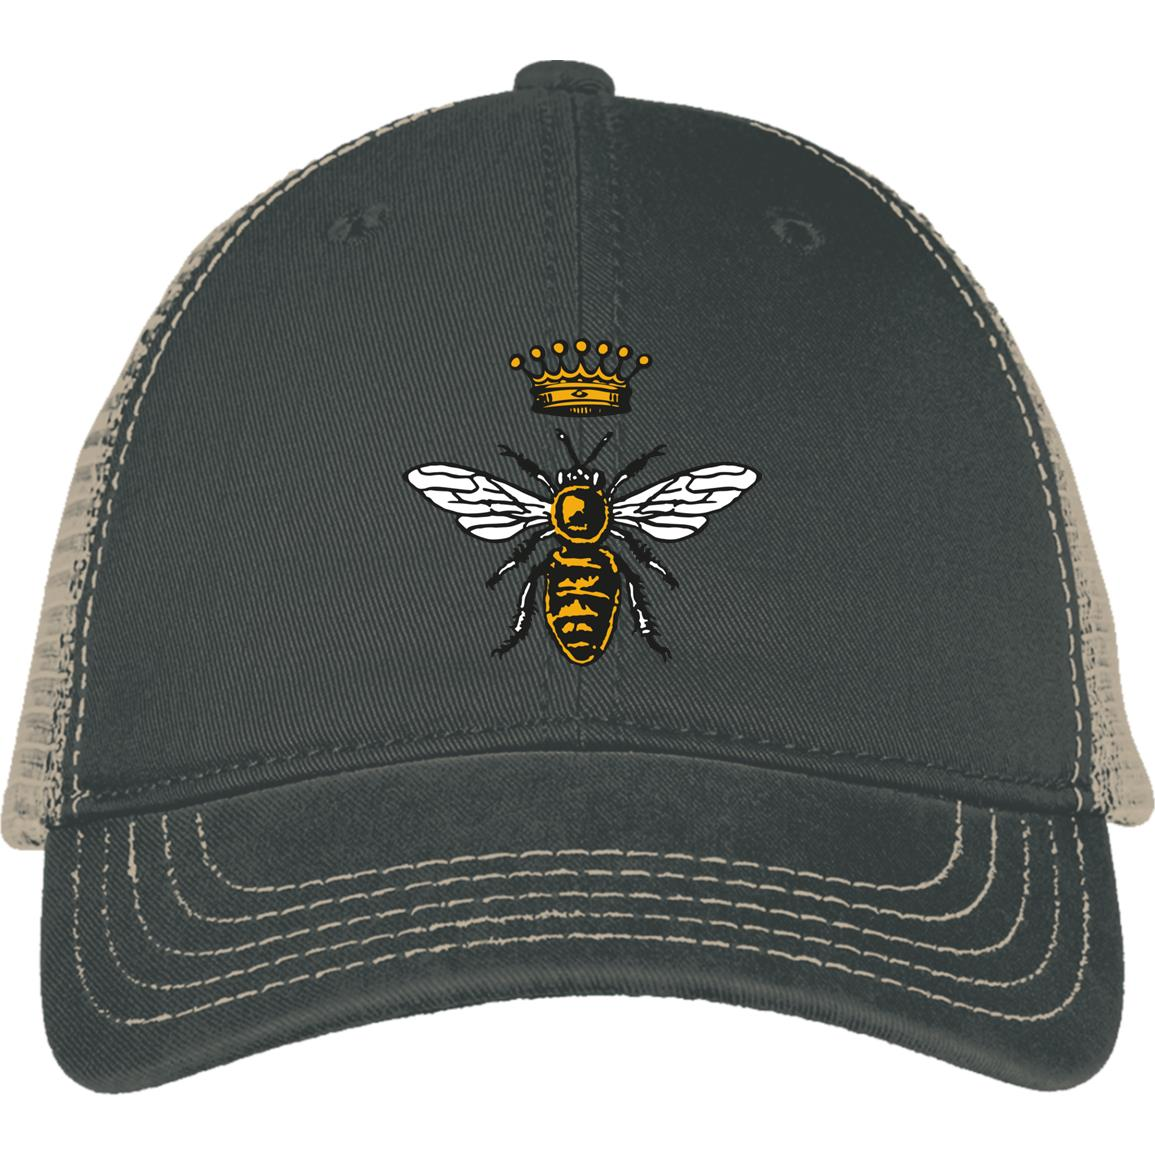 Royal Bee Embroidered Cap